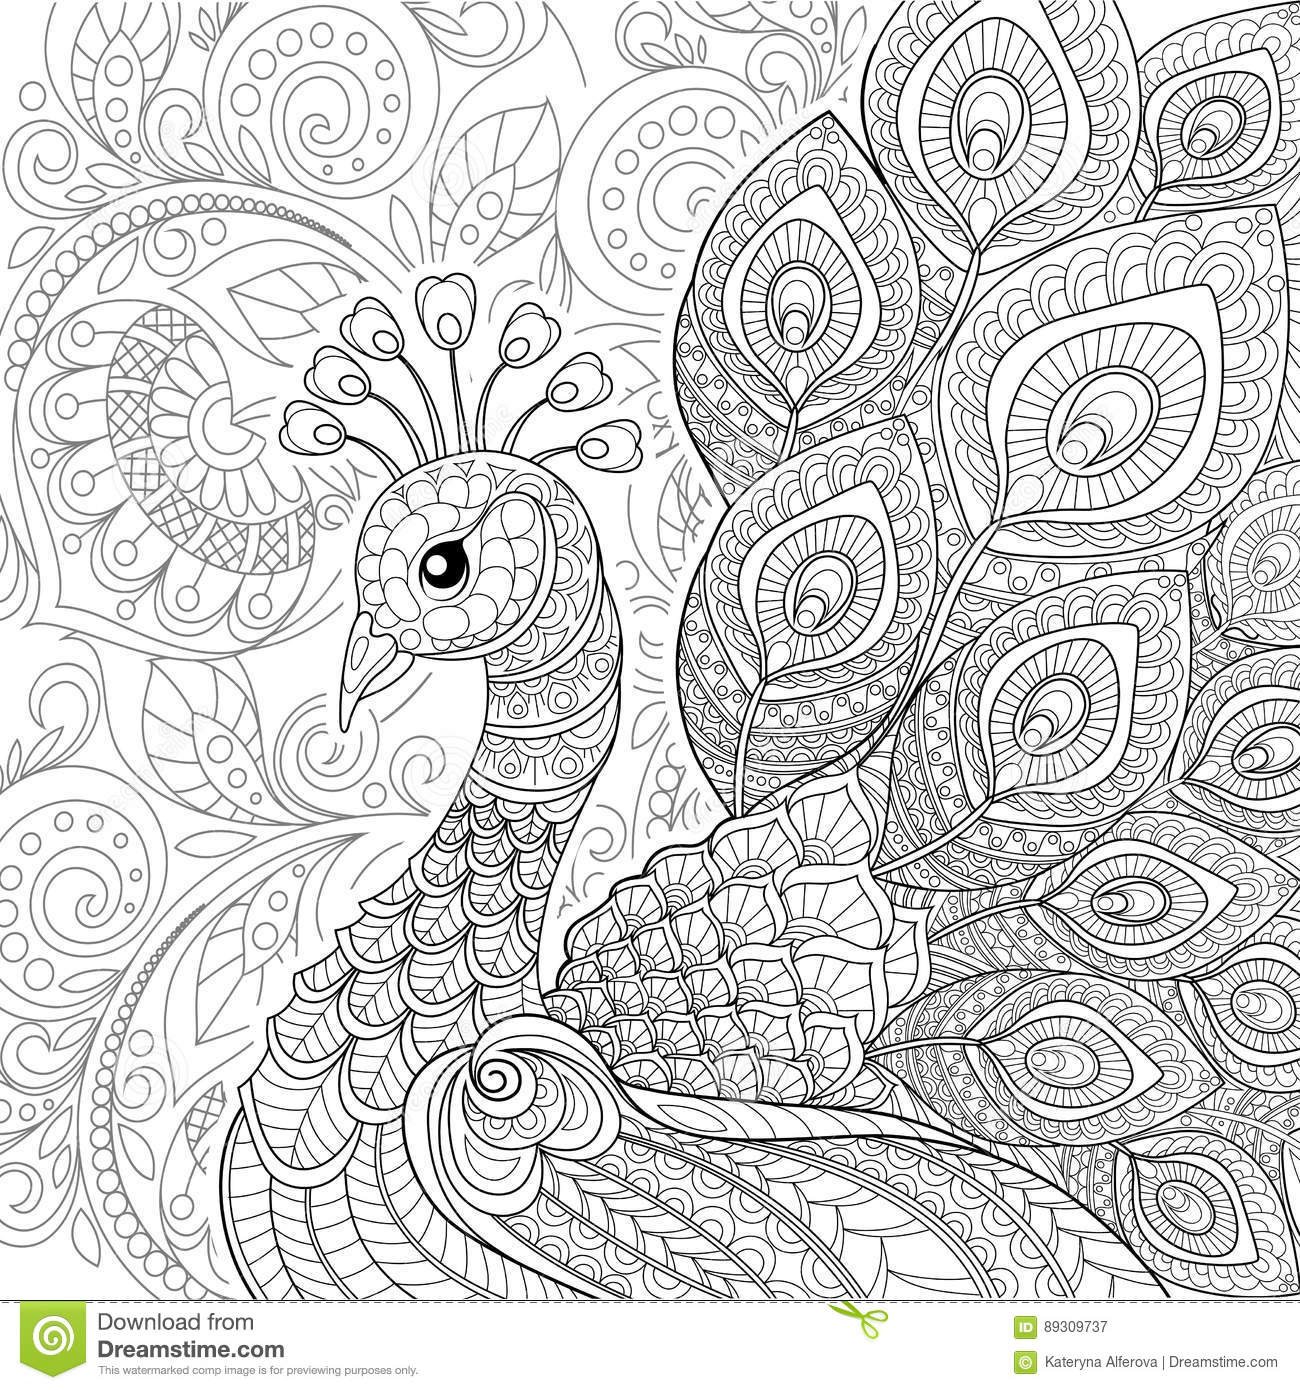 Peacock In Zentangle Style Adult